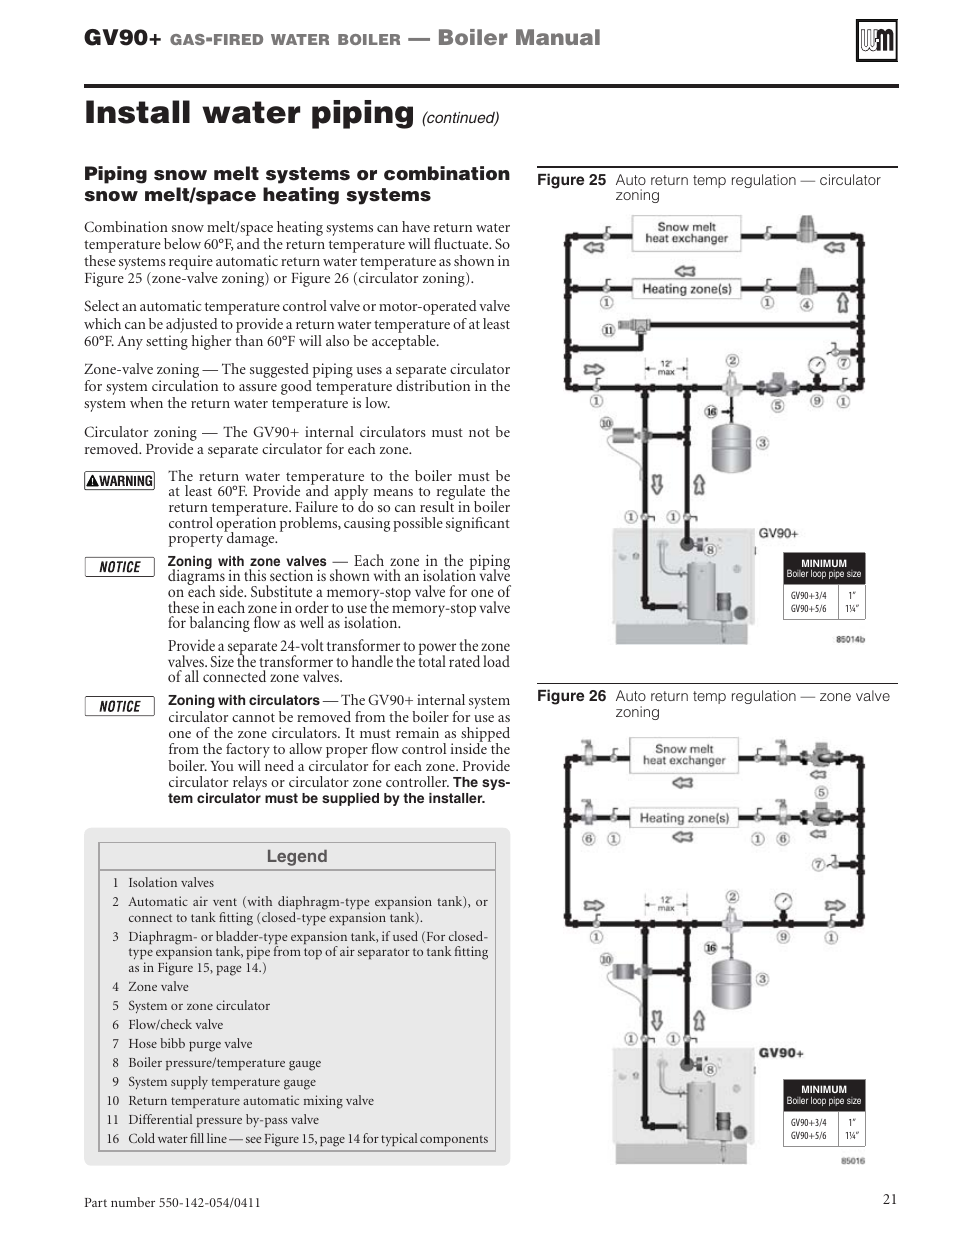 Install Water Piping Gv90 Boiler Manual Weil Mclain User Schematic Diagram Page 21 108